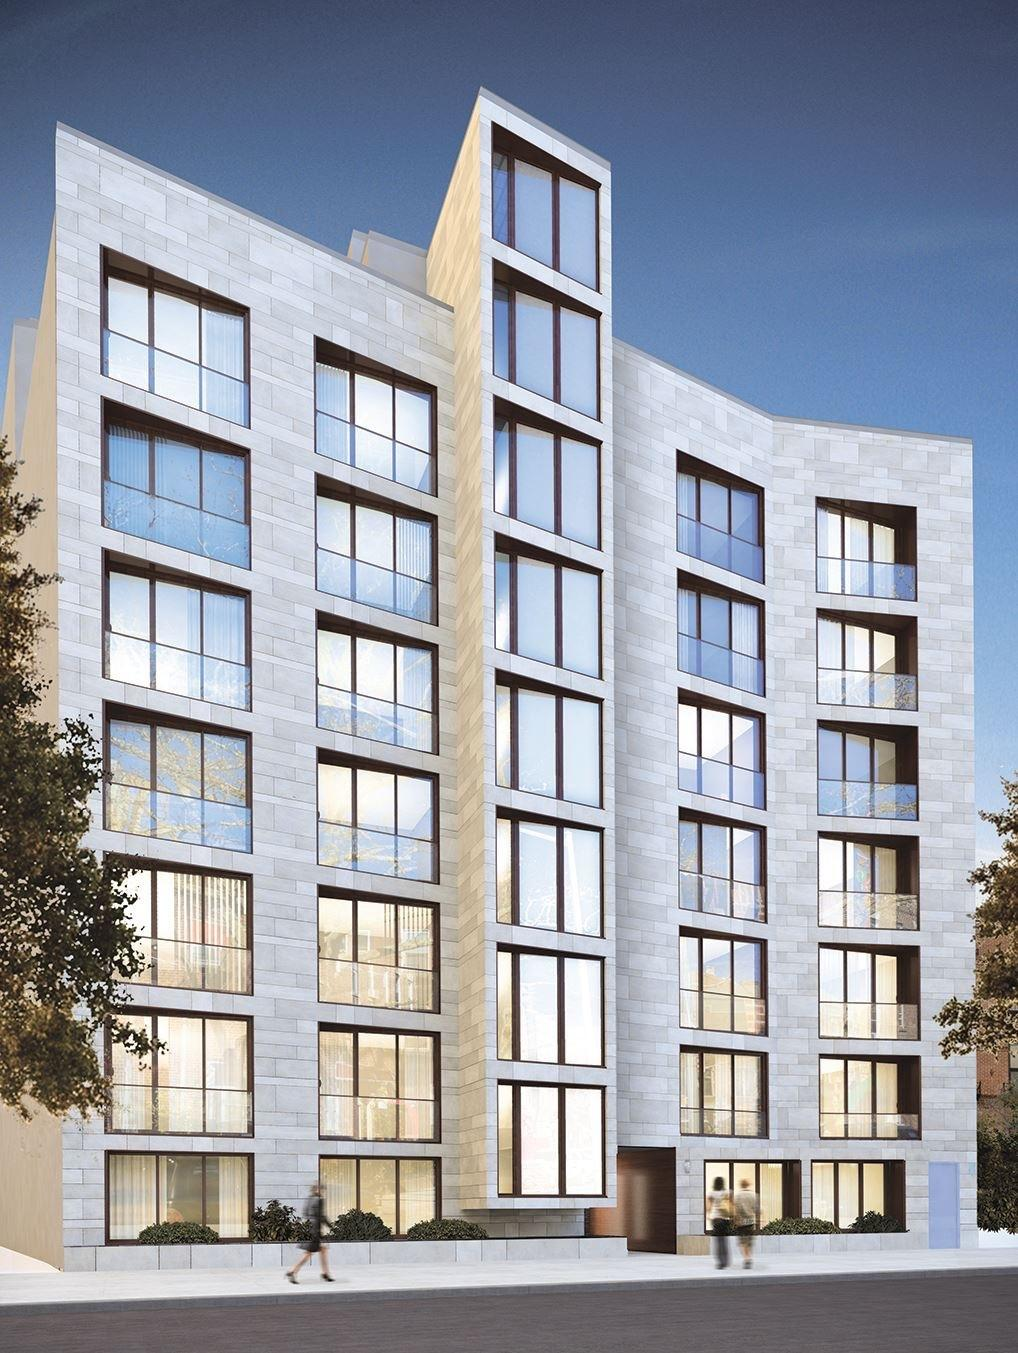 15 East 19th Street, rendering by RoArt